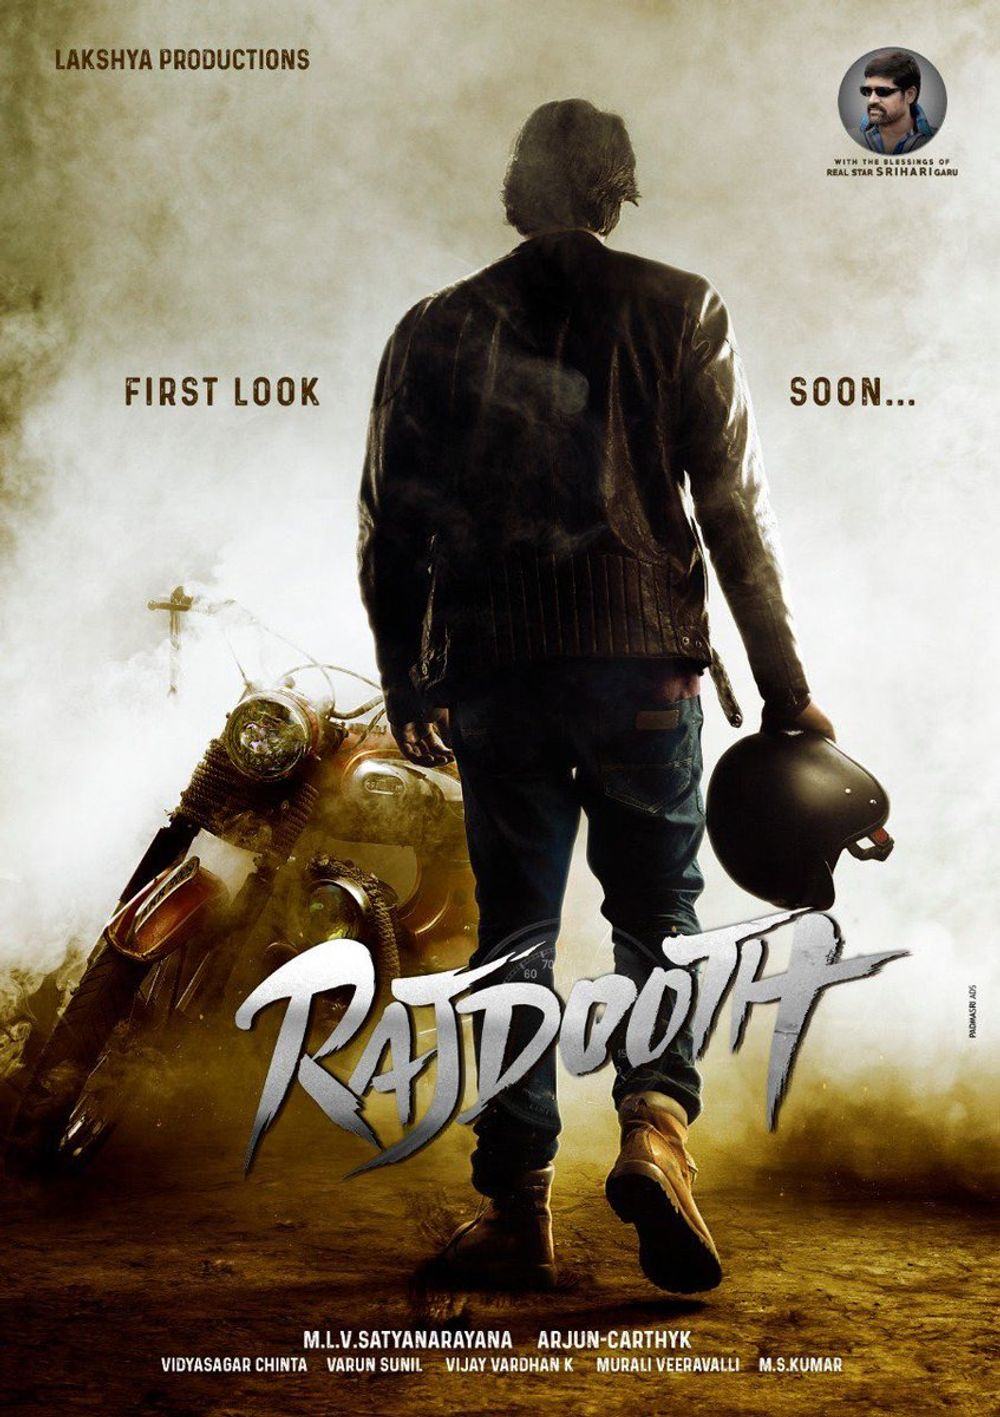 Rajdooth Movie Review